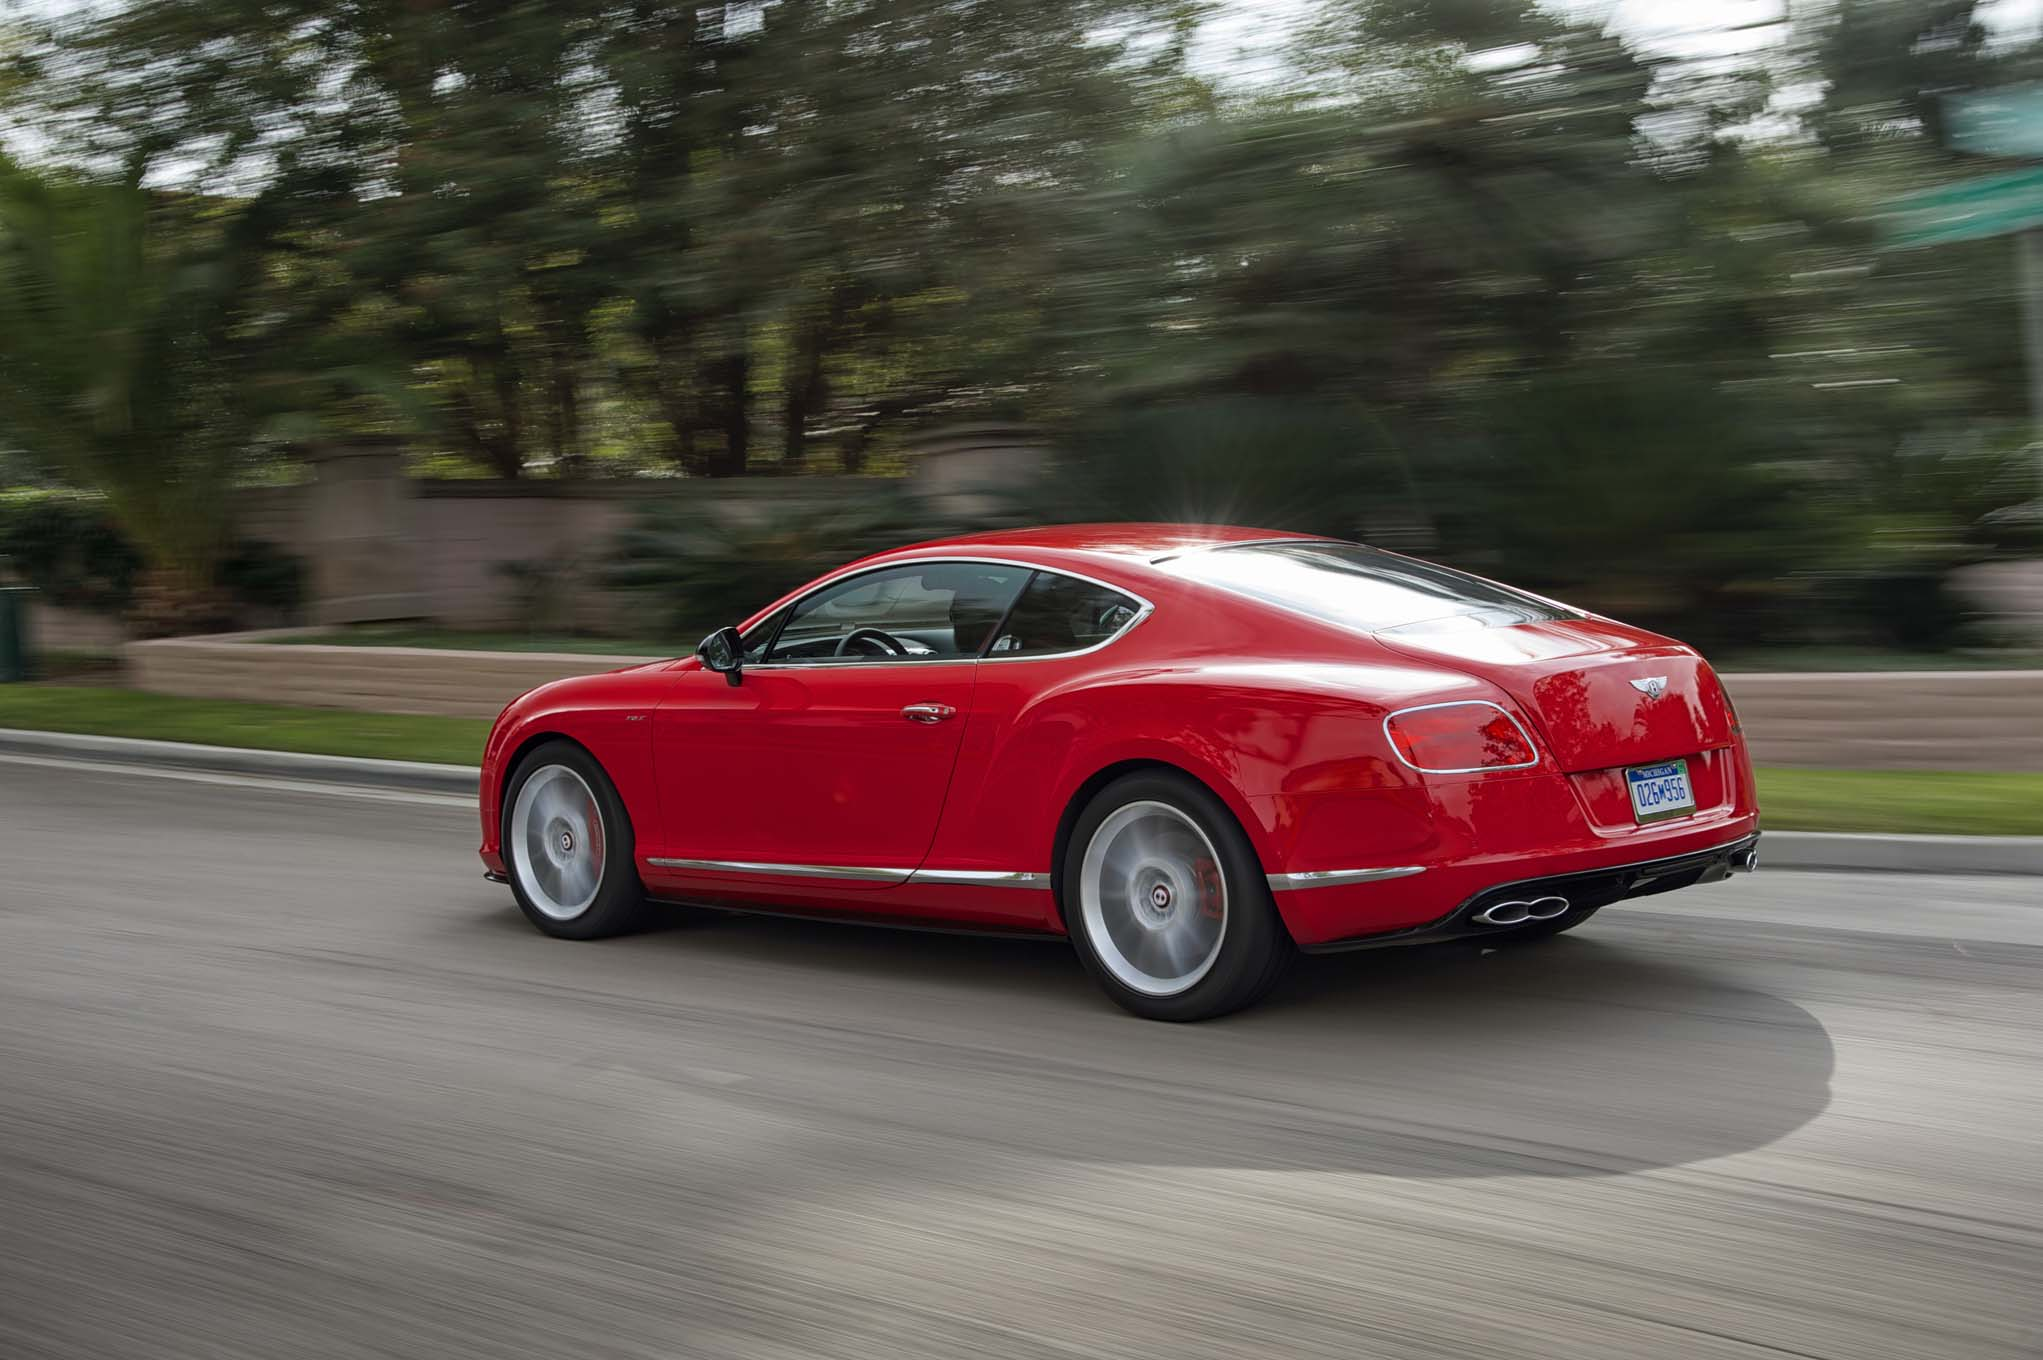 2014 Bentley Continental GT V8 S Review - Automobile Magazine